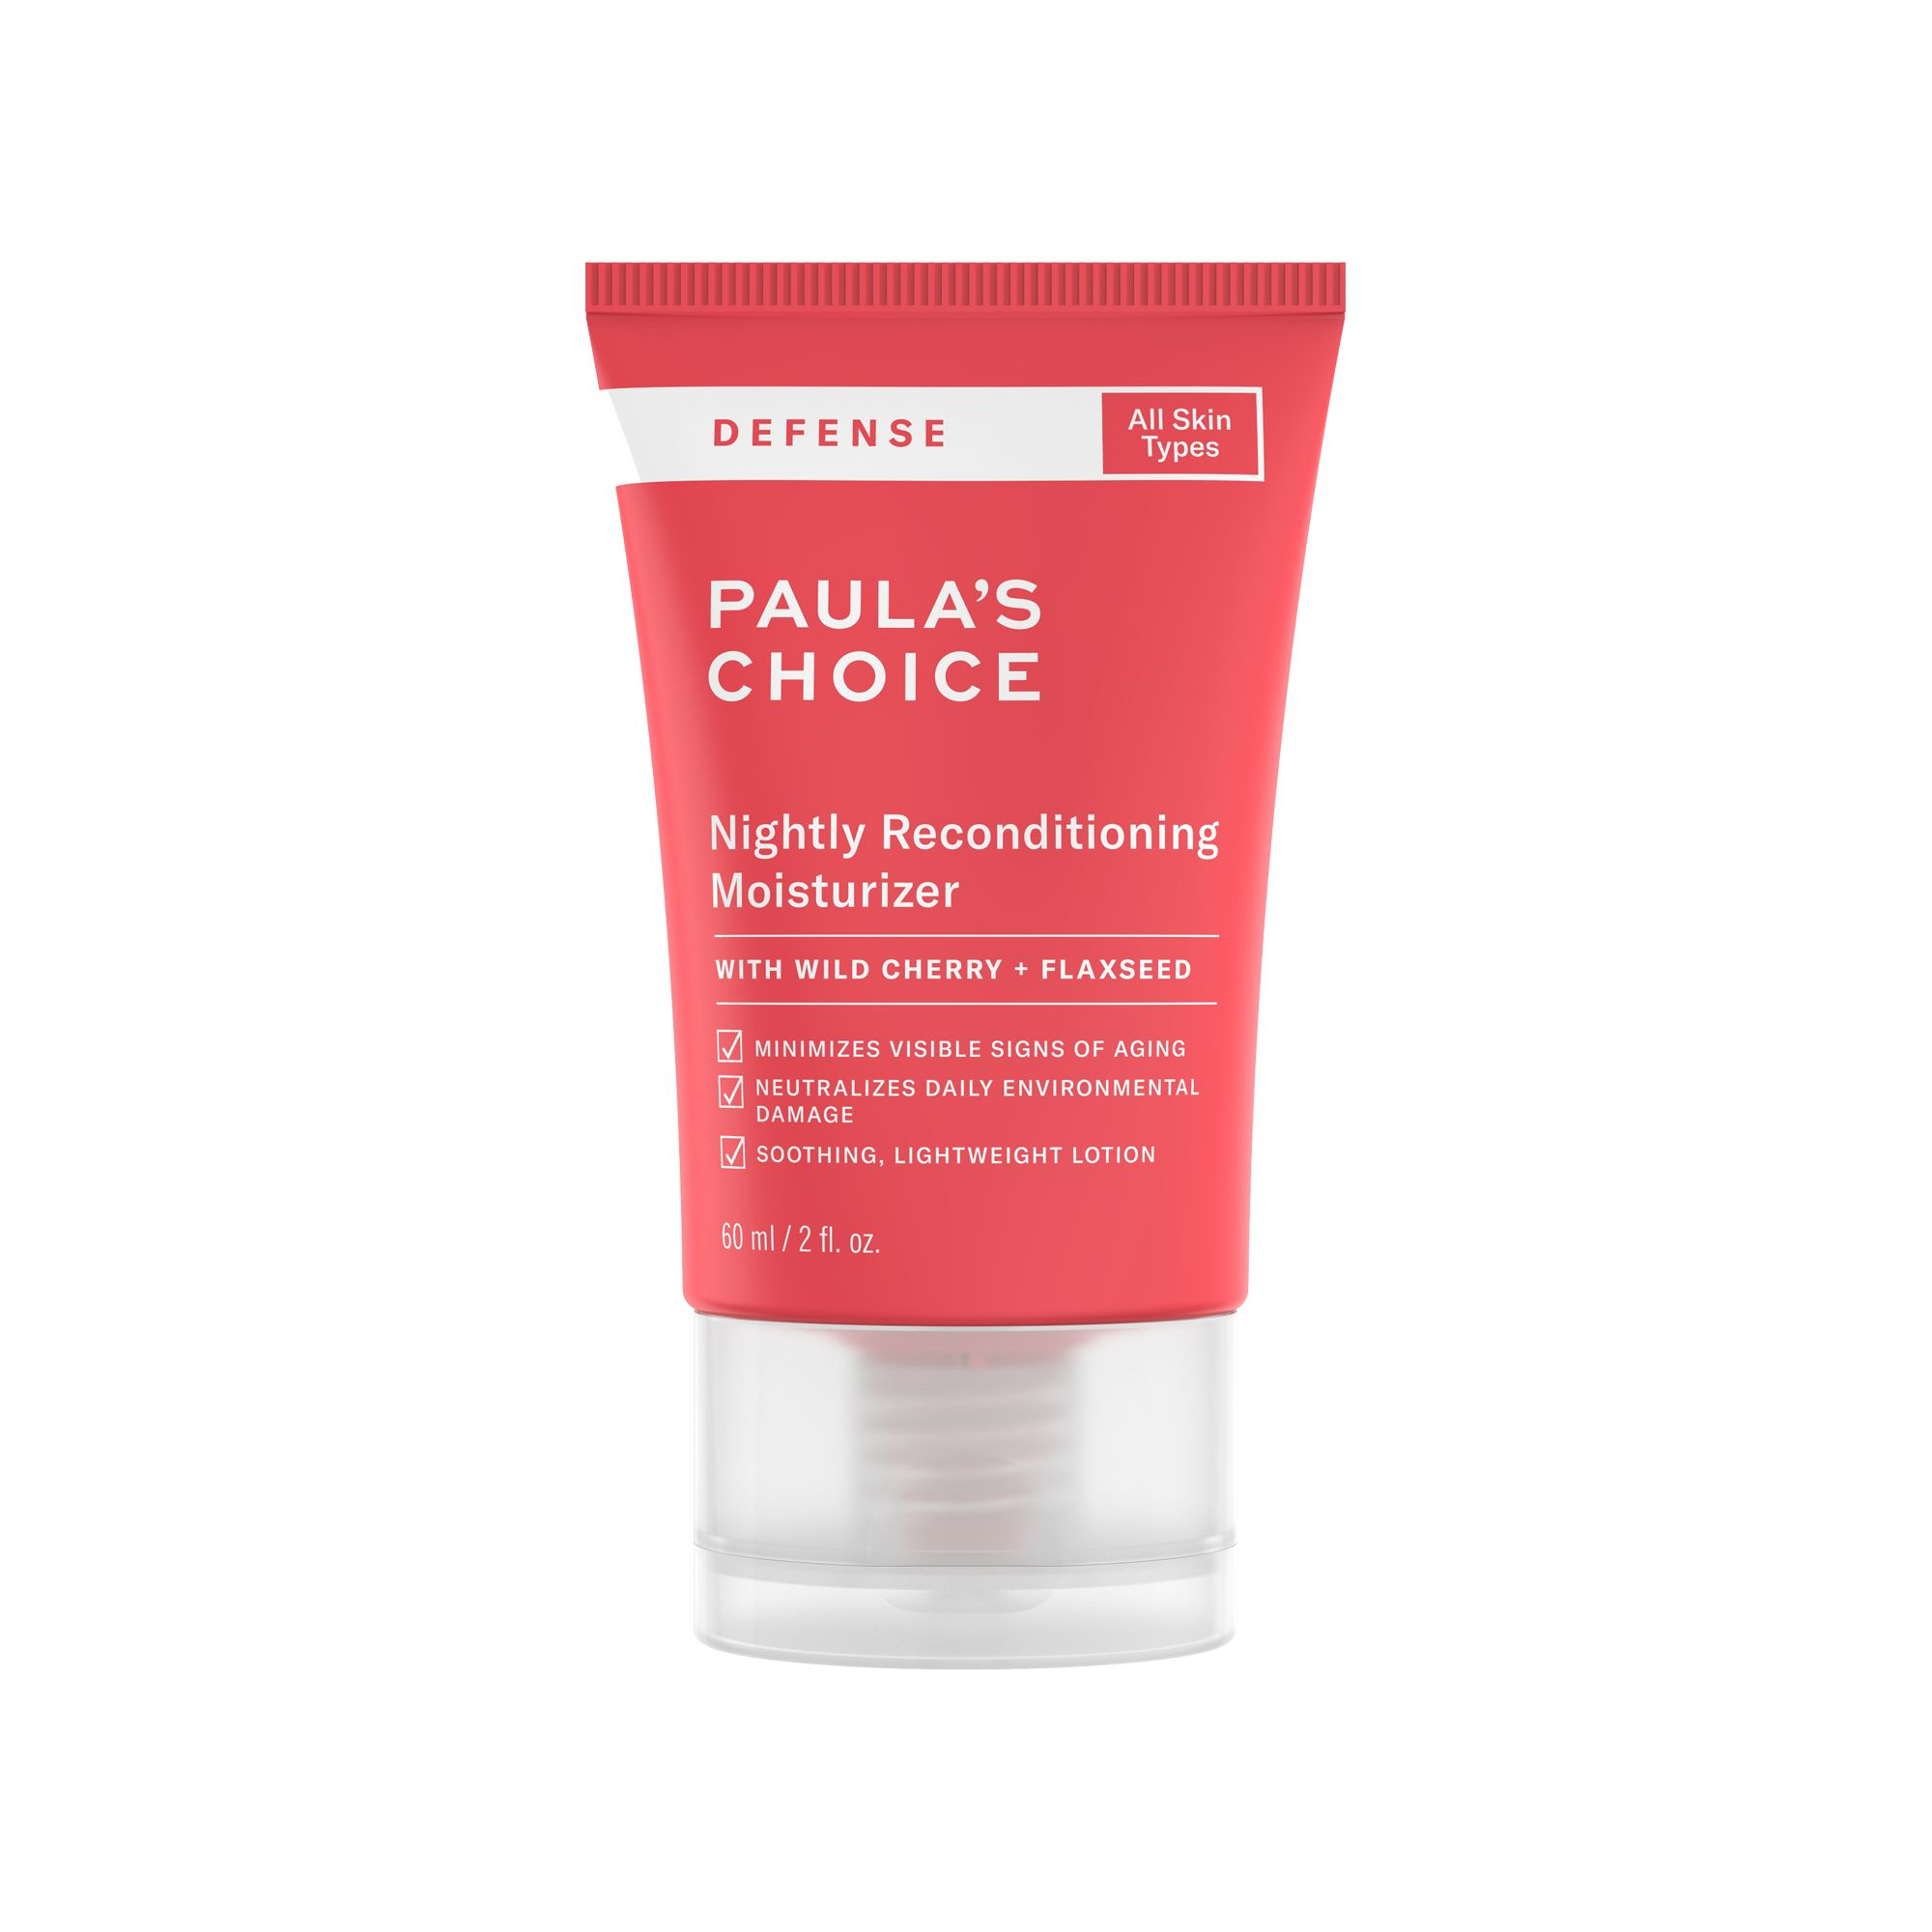 Paula's Choice Defense Nightly Reconditioning Moisturizer